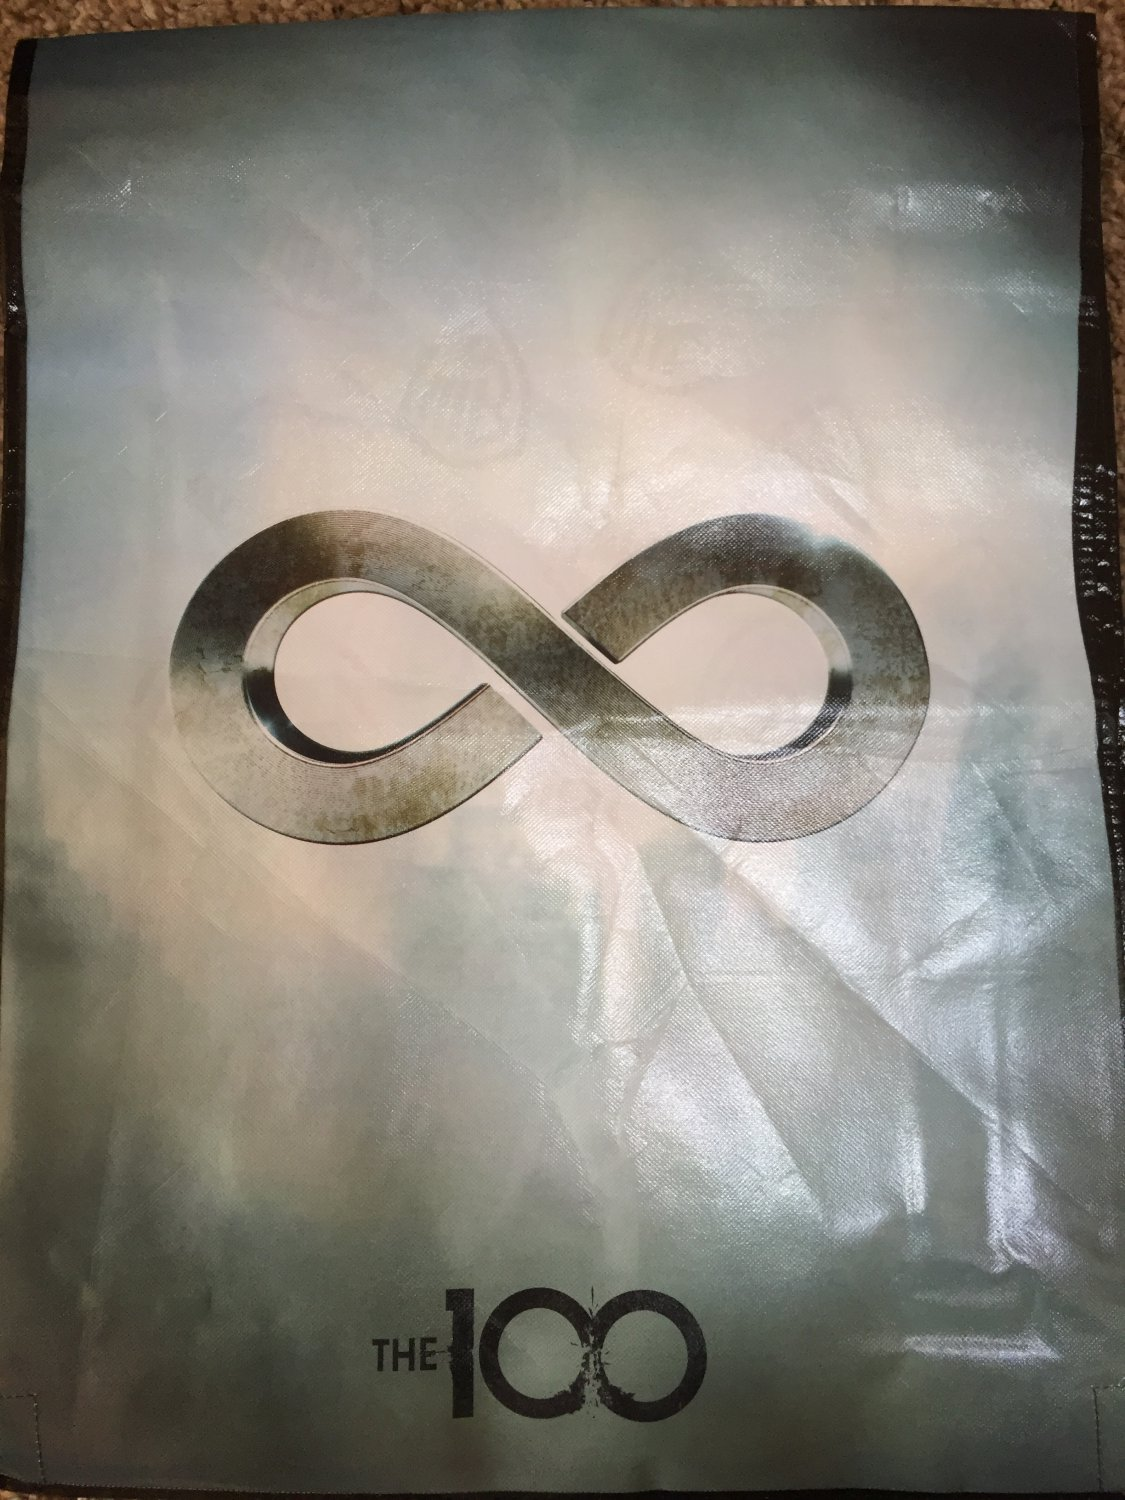 SDCC 2016 Exclusive WB bag - The 100